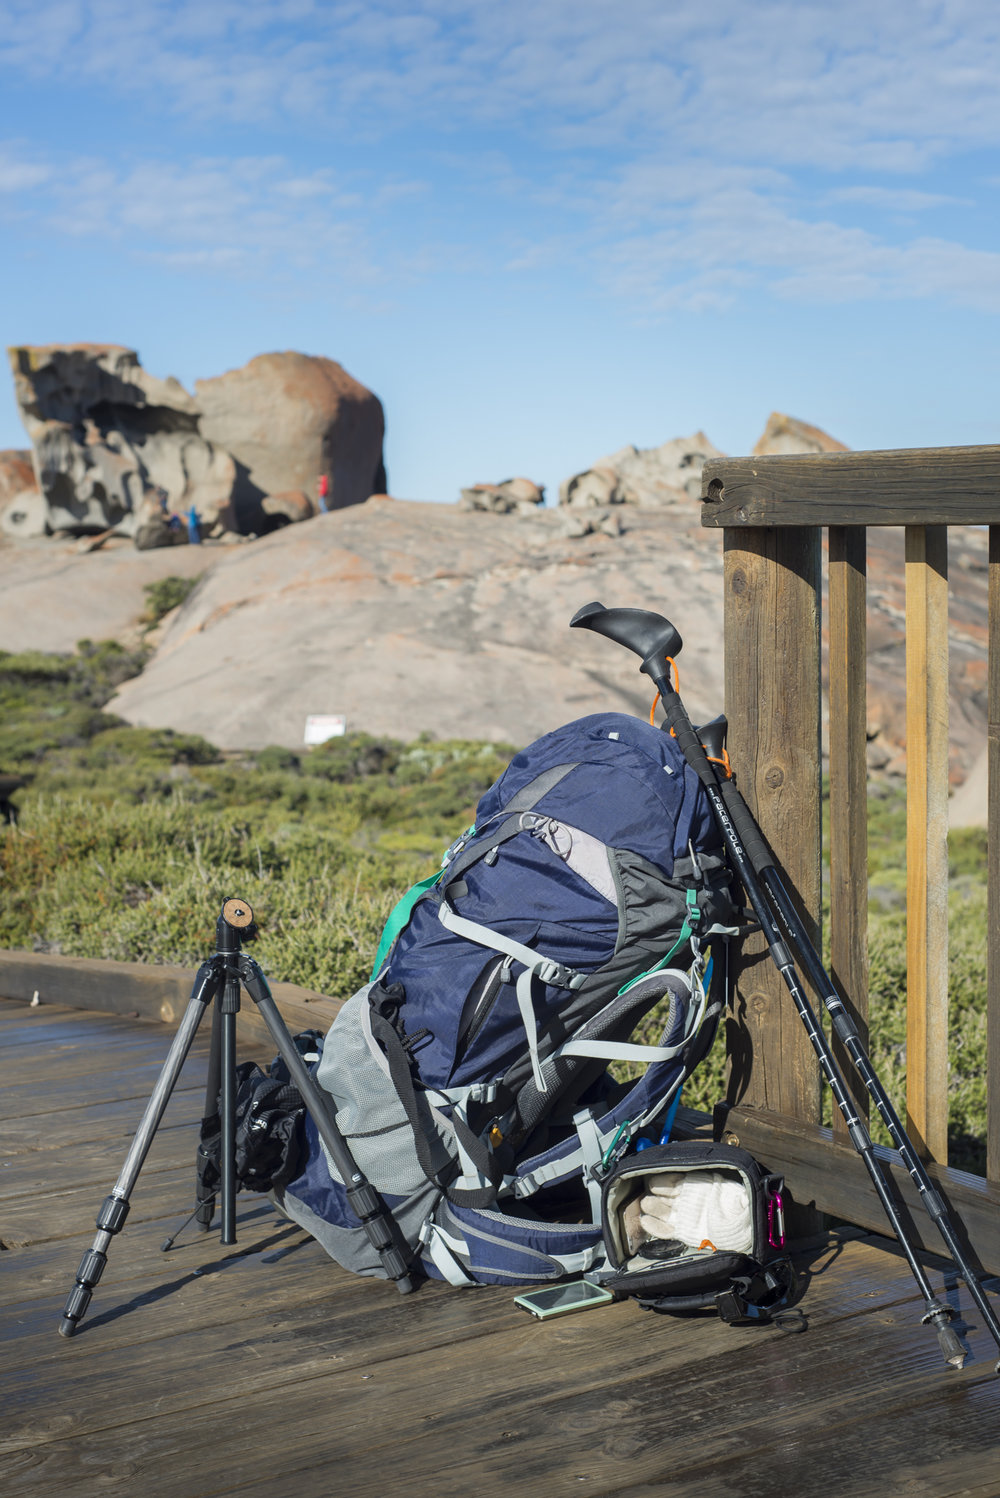 Of course, everyone packs a tripod and DSLR for a hike, right?